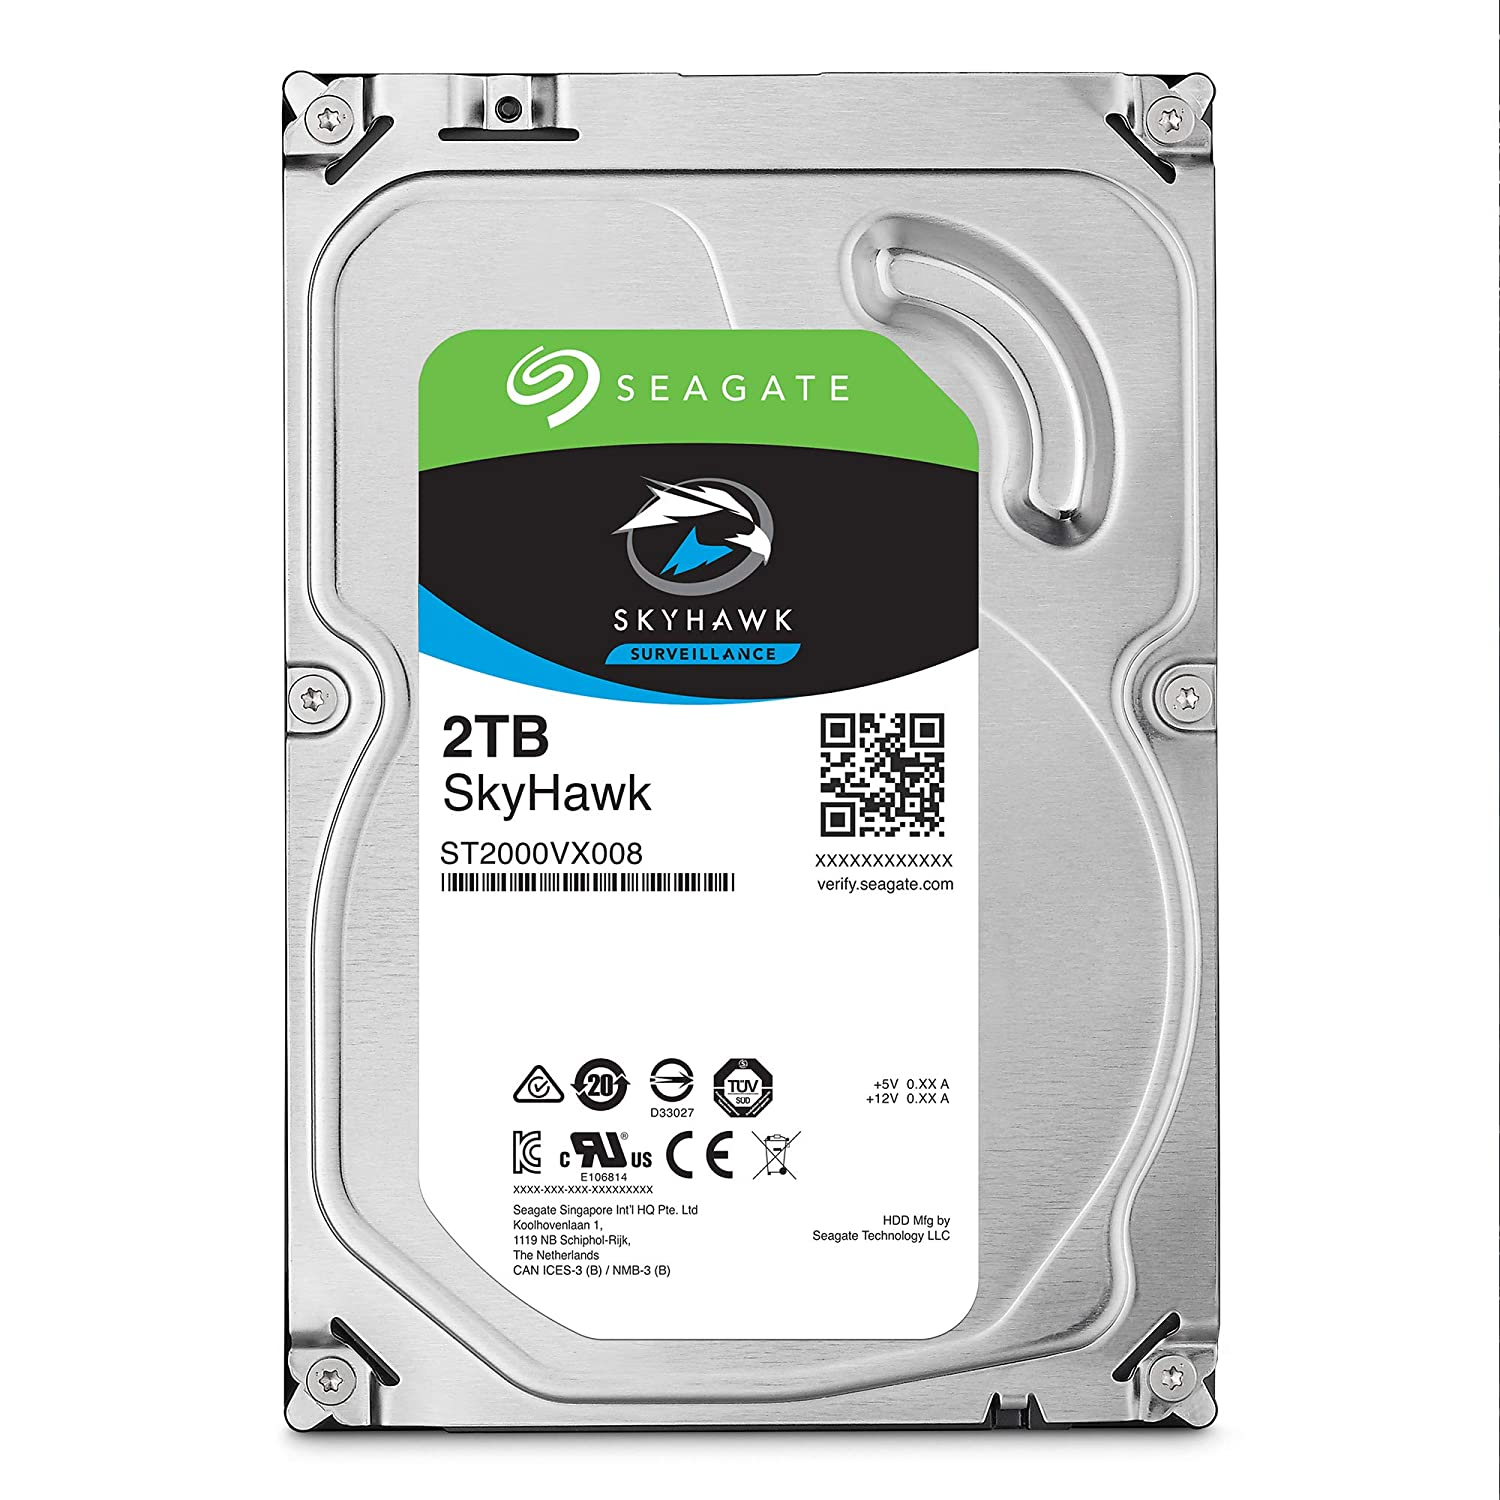 Seagate Skyhawk 2TB Surveillance Internal Hard Drive HDD – 3.5 Inch SATA 6Gb/s 64MB Cache for DVR NVR Security Camera System with Drive Health Management – Frustration Free Packaging (ST2000VX008)